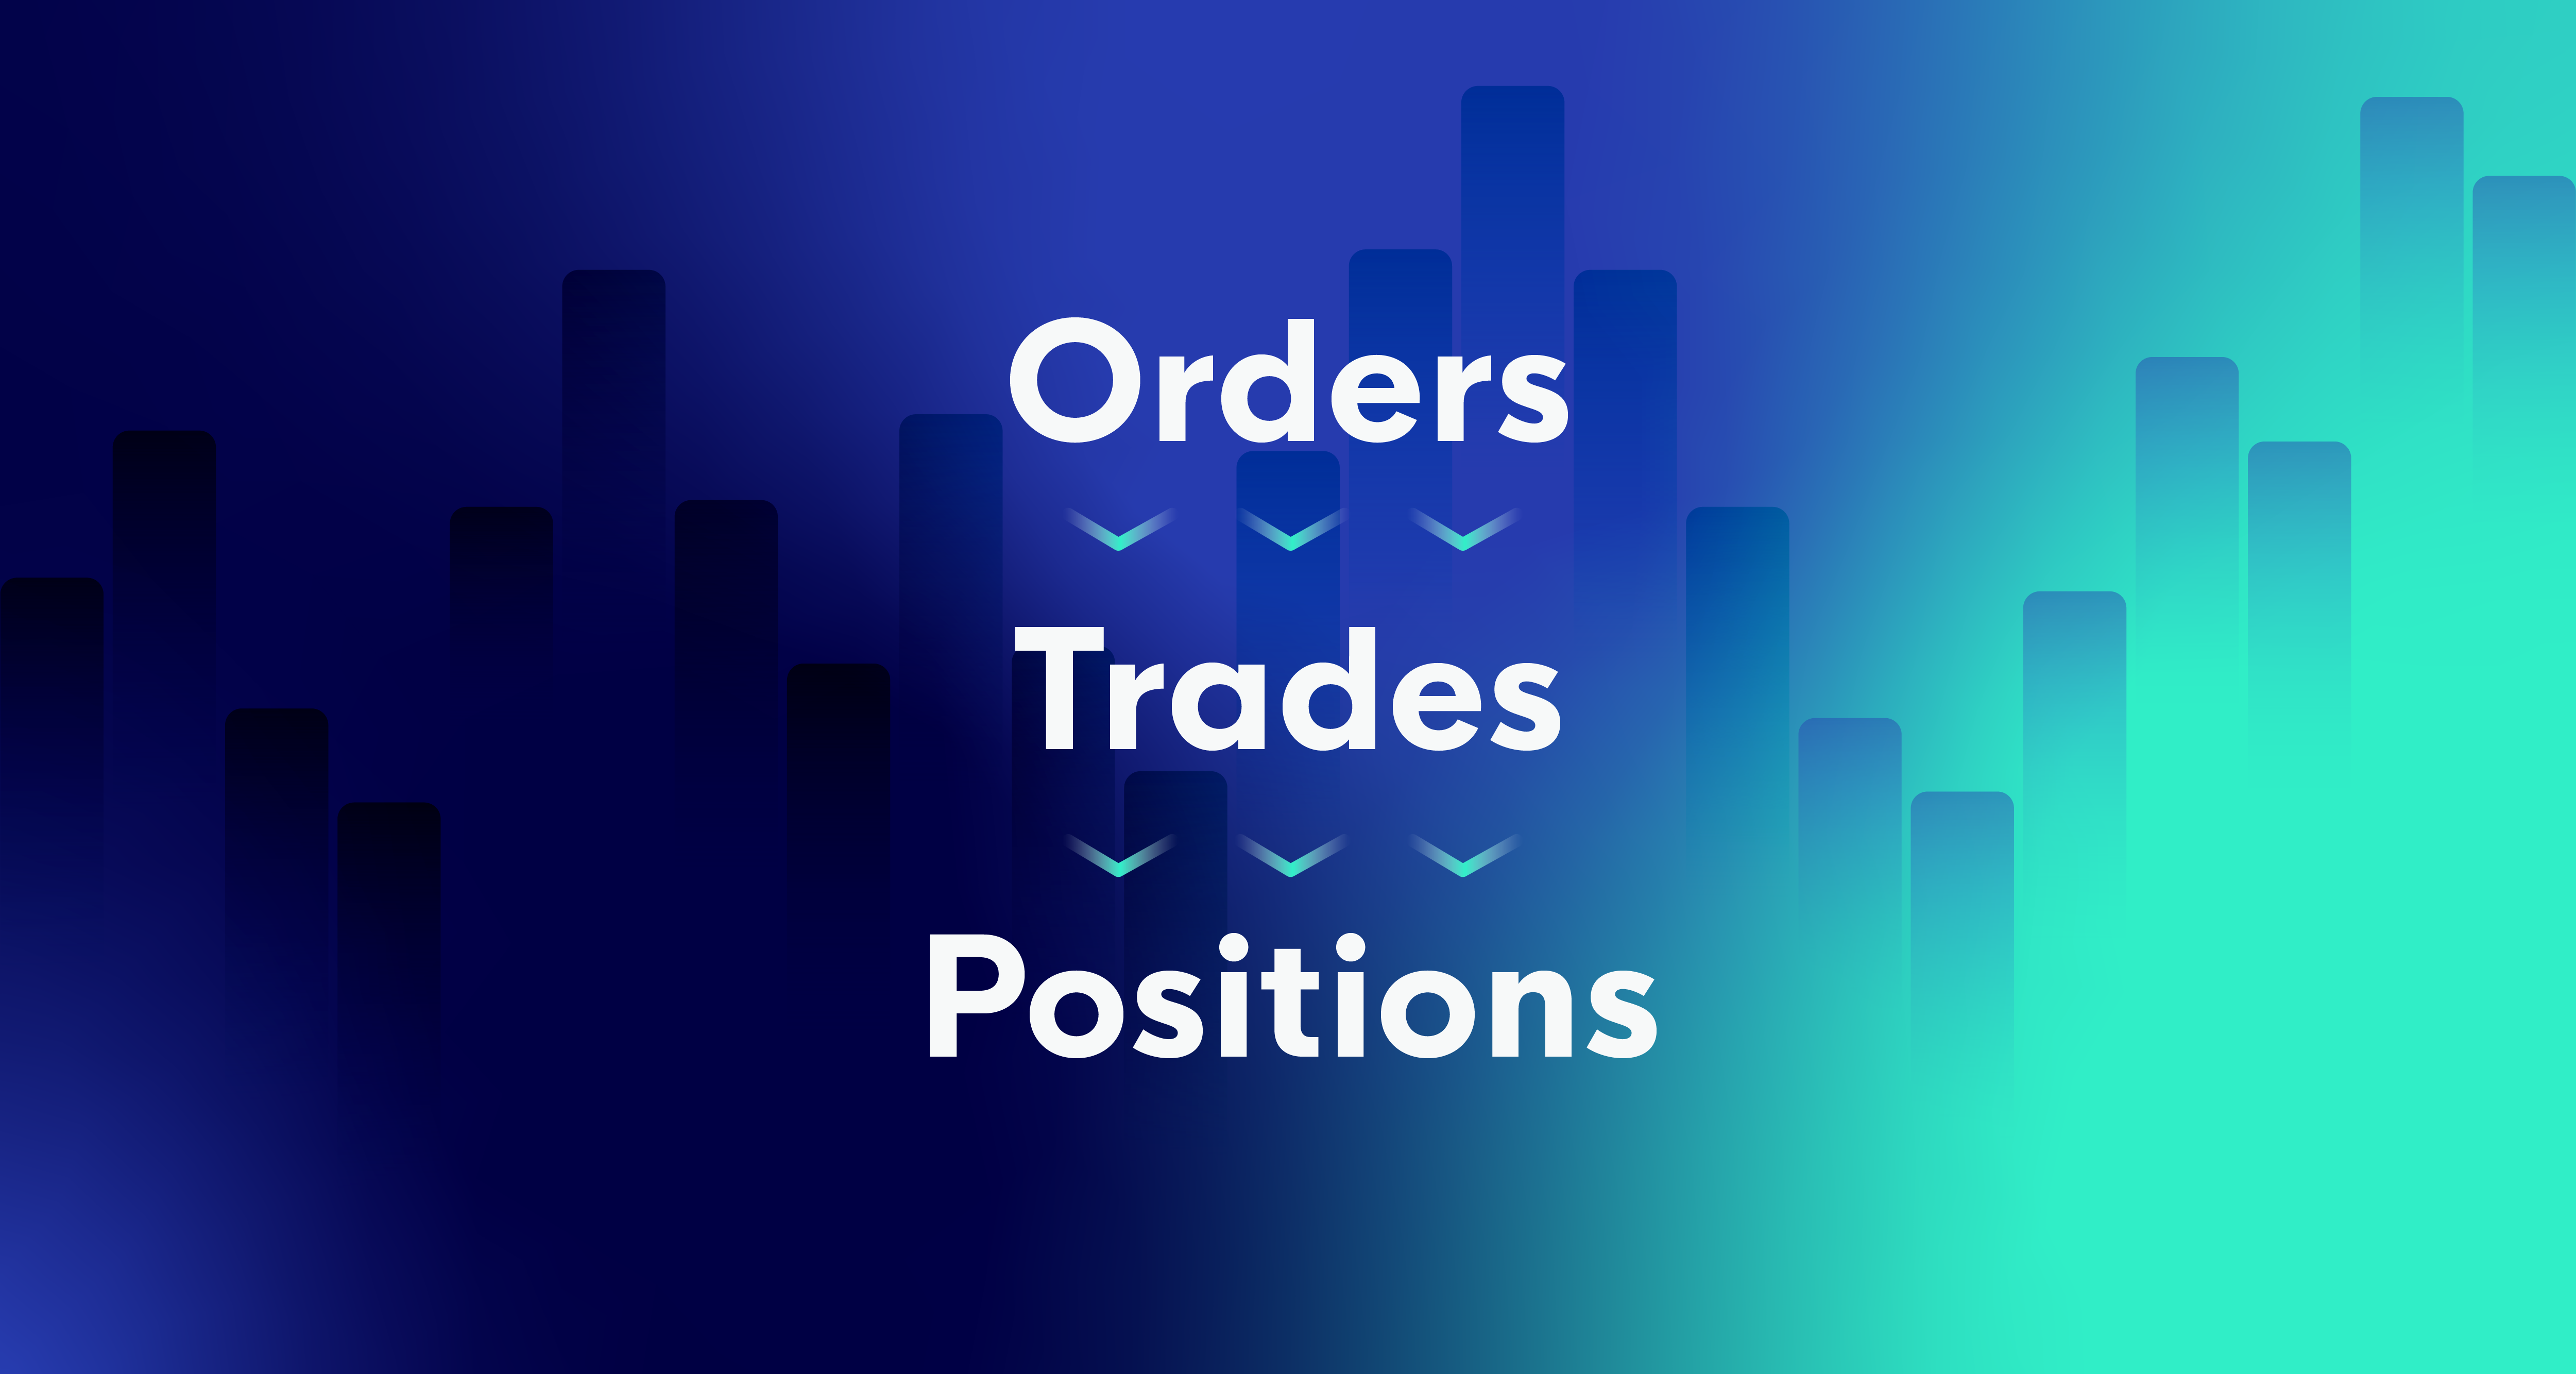 Orders, Positions, Trades